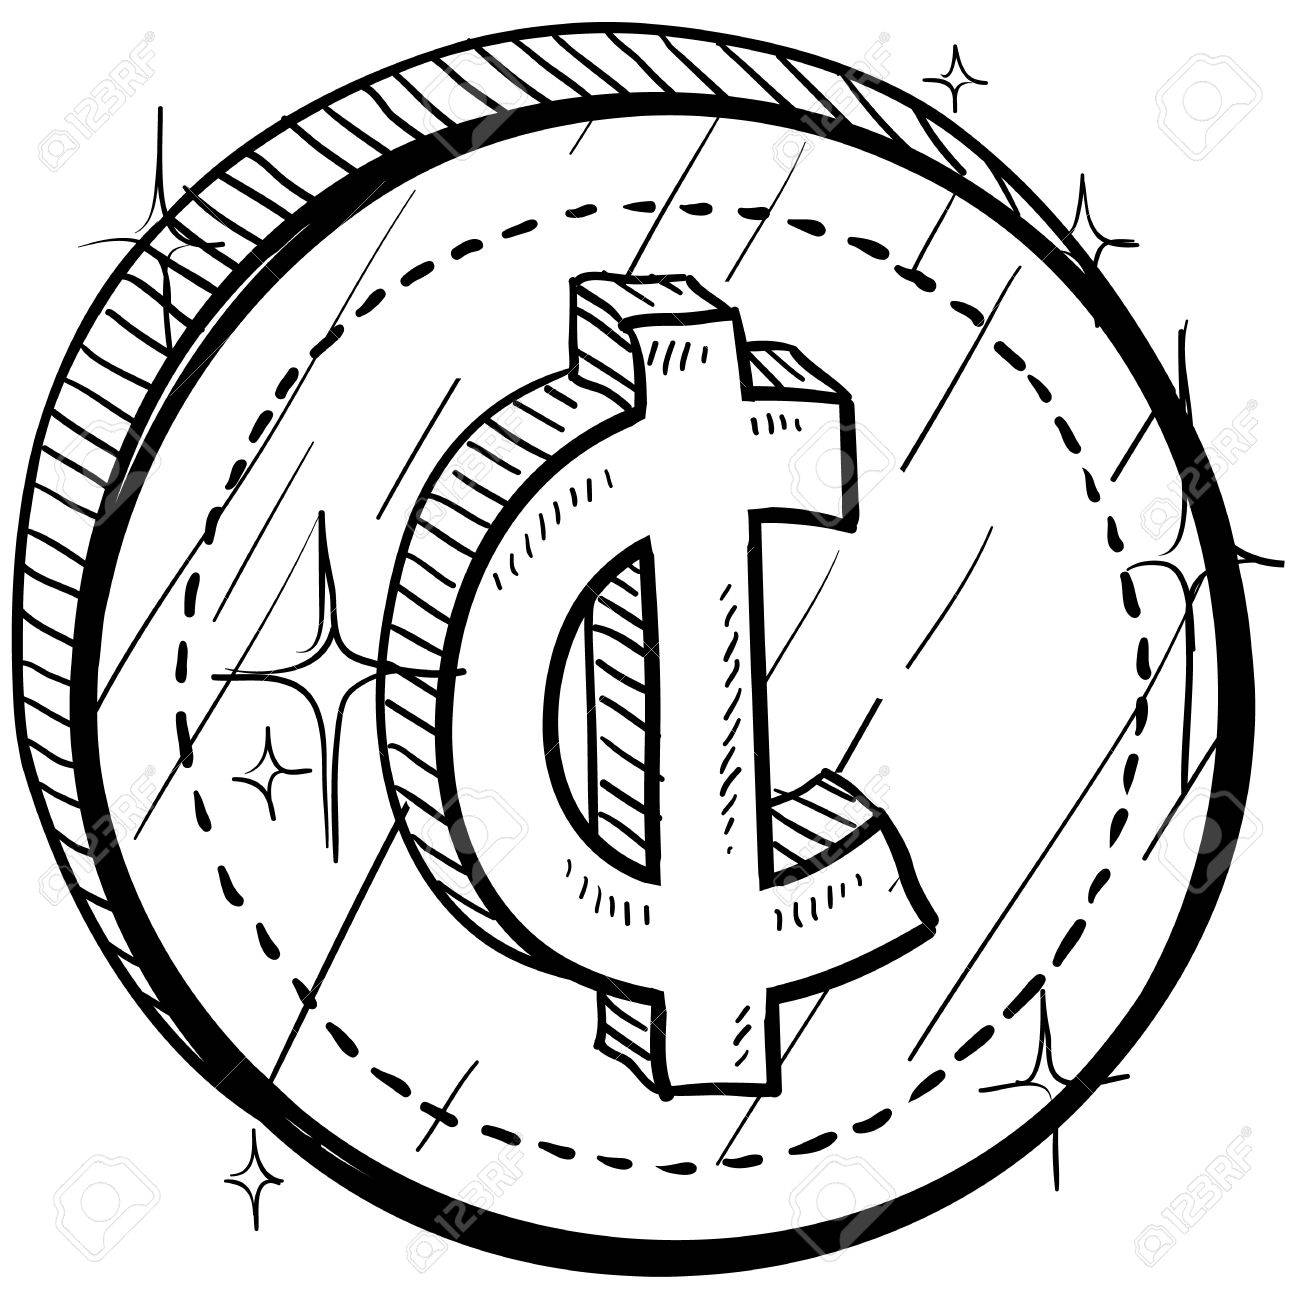 Doodle style coin with currency symbol cent royalty free cliparts doodle style coin with currency symbol cent stock vector 14460852 biocorpaavc Image collections